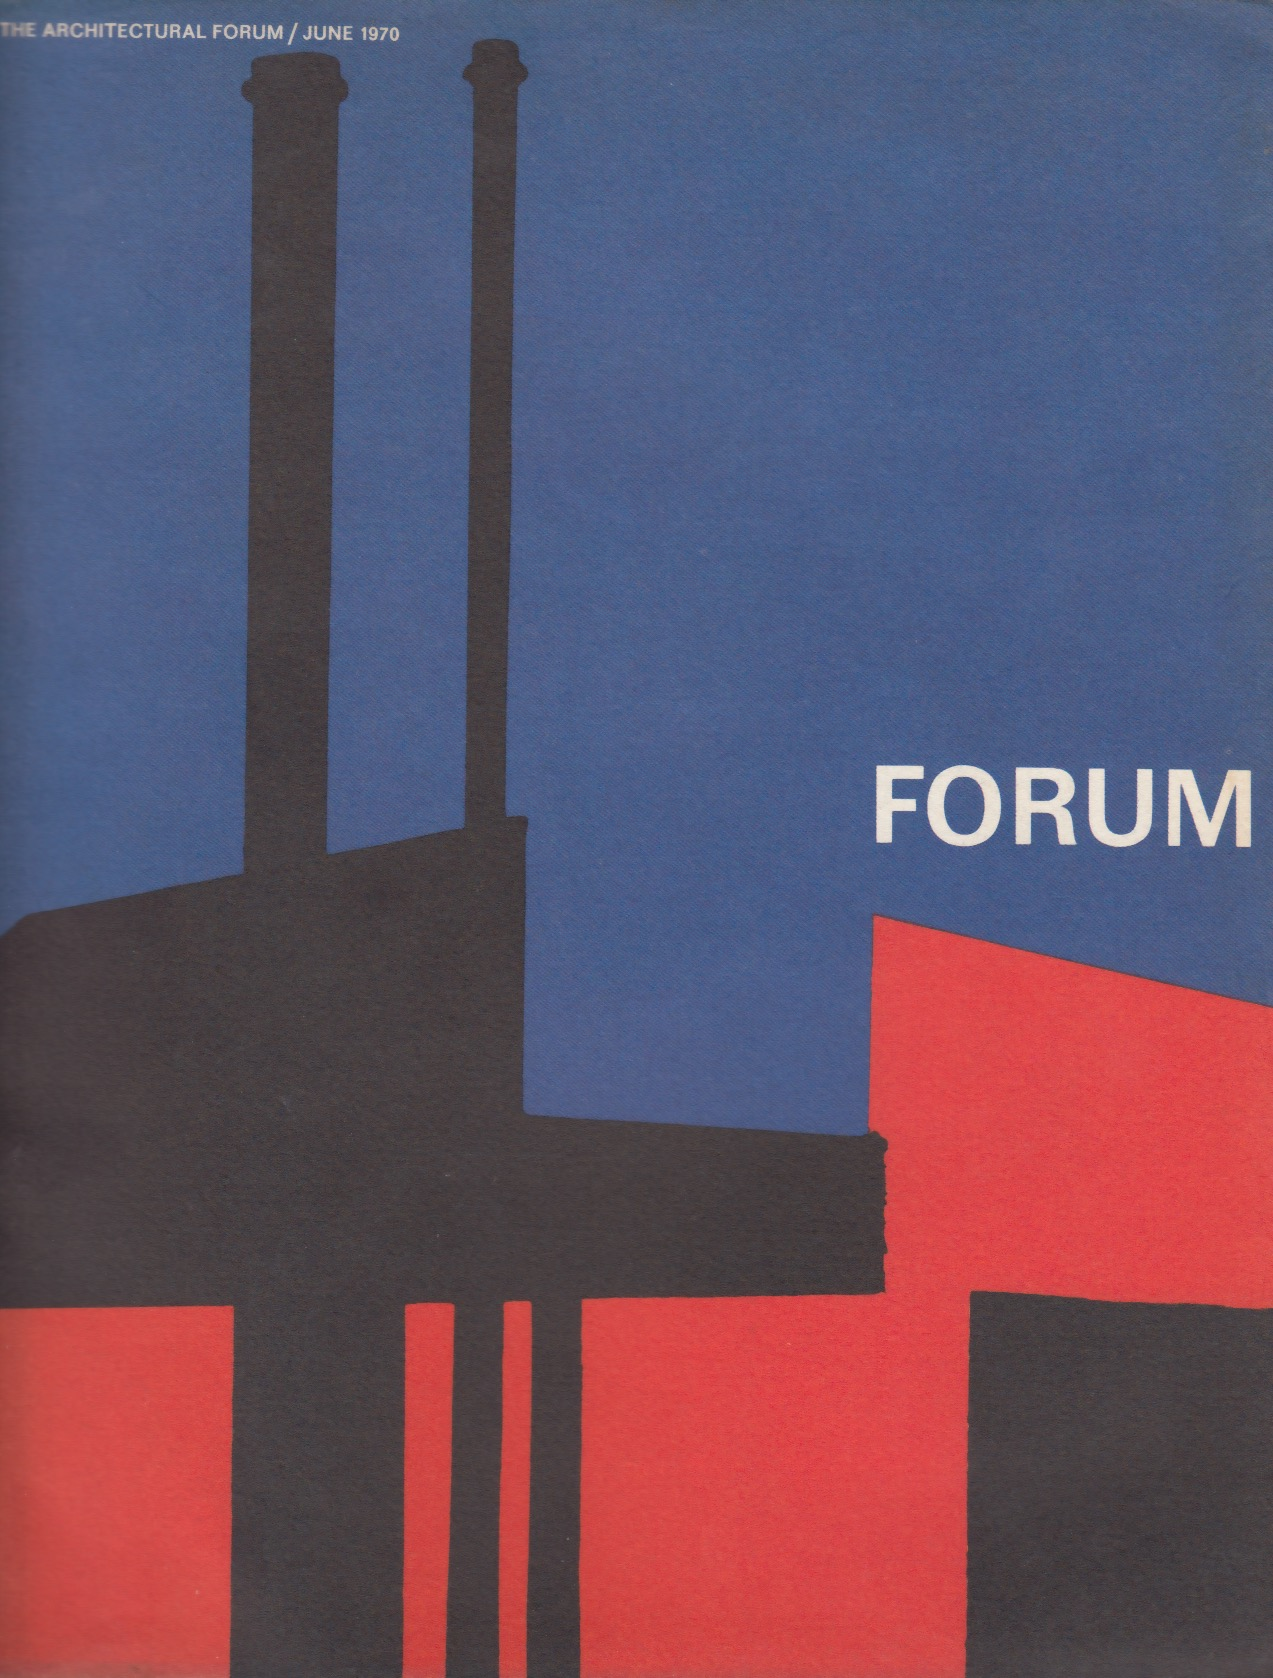 Thumbnail for The Daily Heller: What's Better Than a Beautiful Magazine Cover?